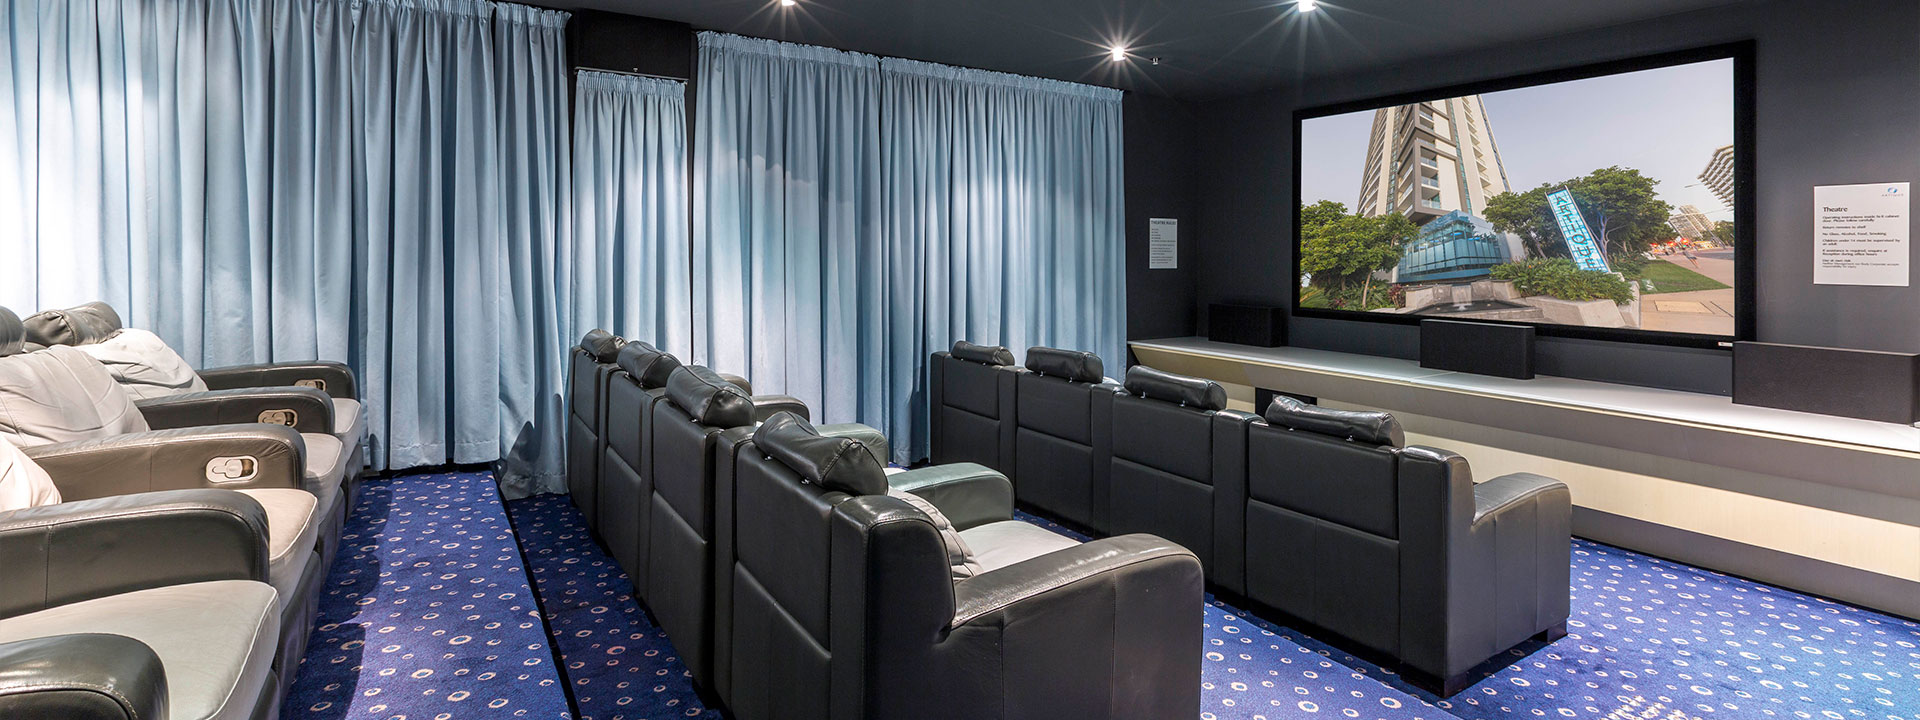 Artique Resort - Private Theatre